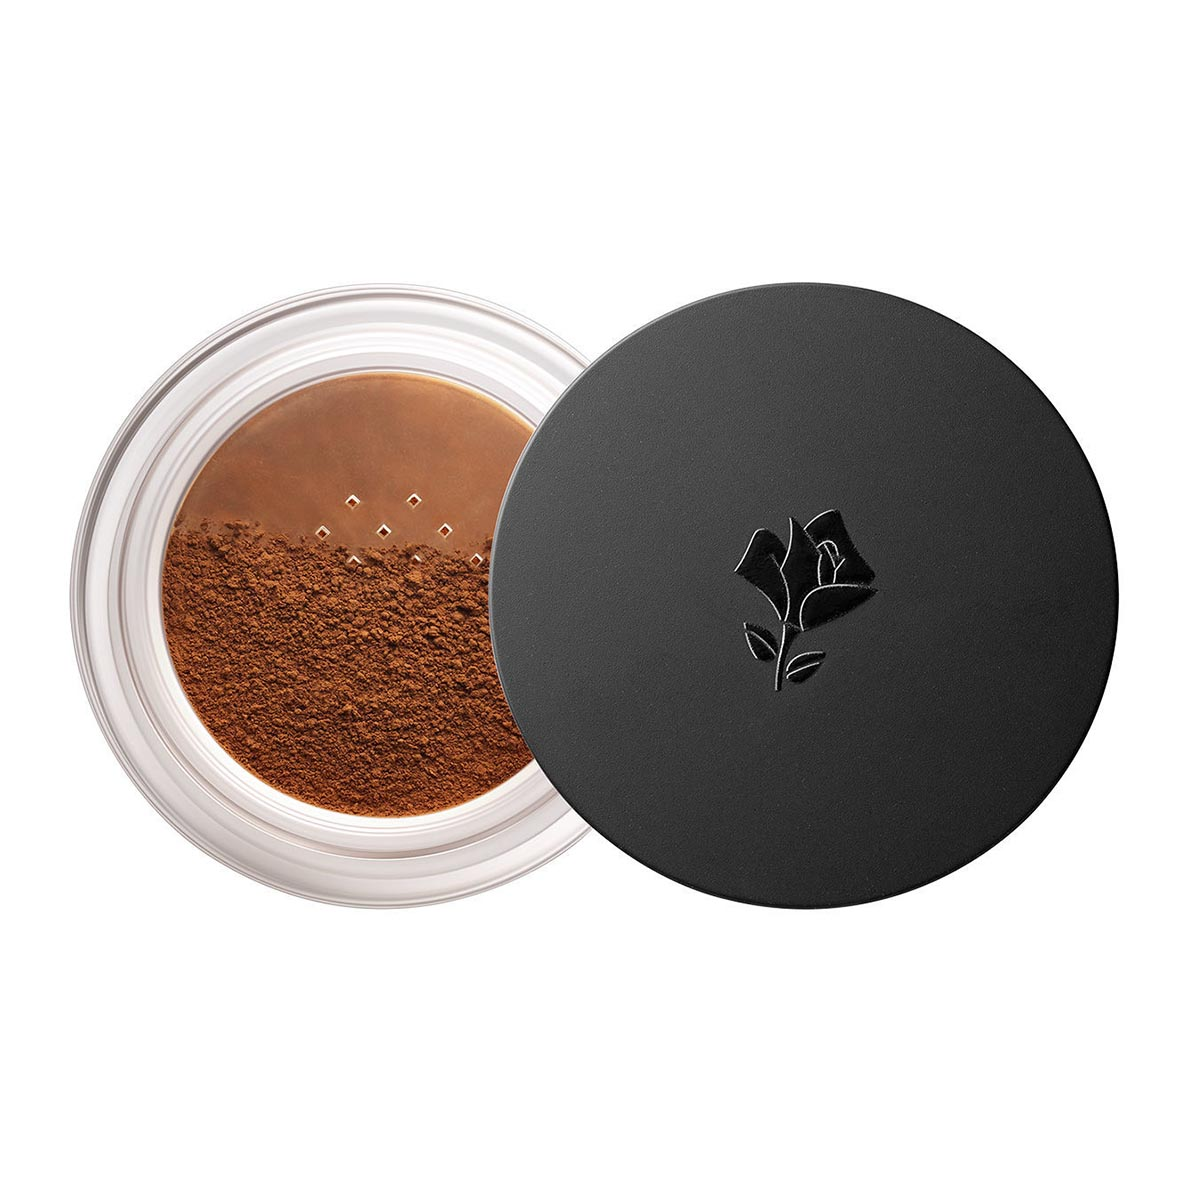 Lancome long time no shine setting powder deep